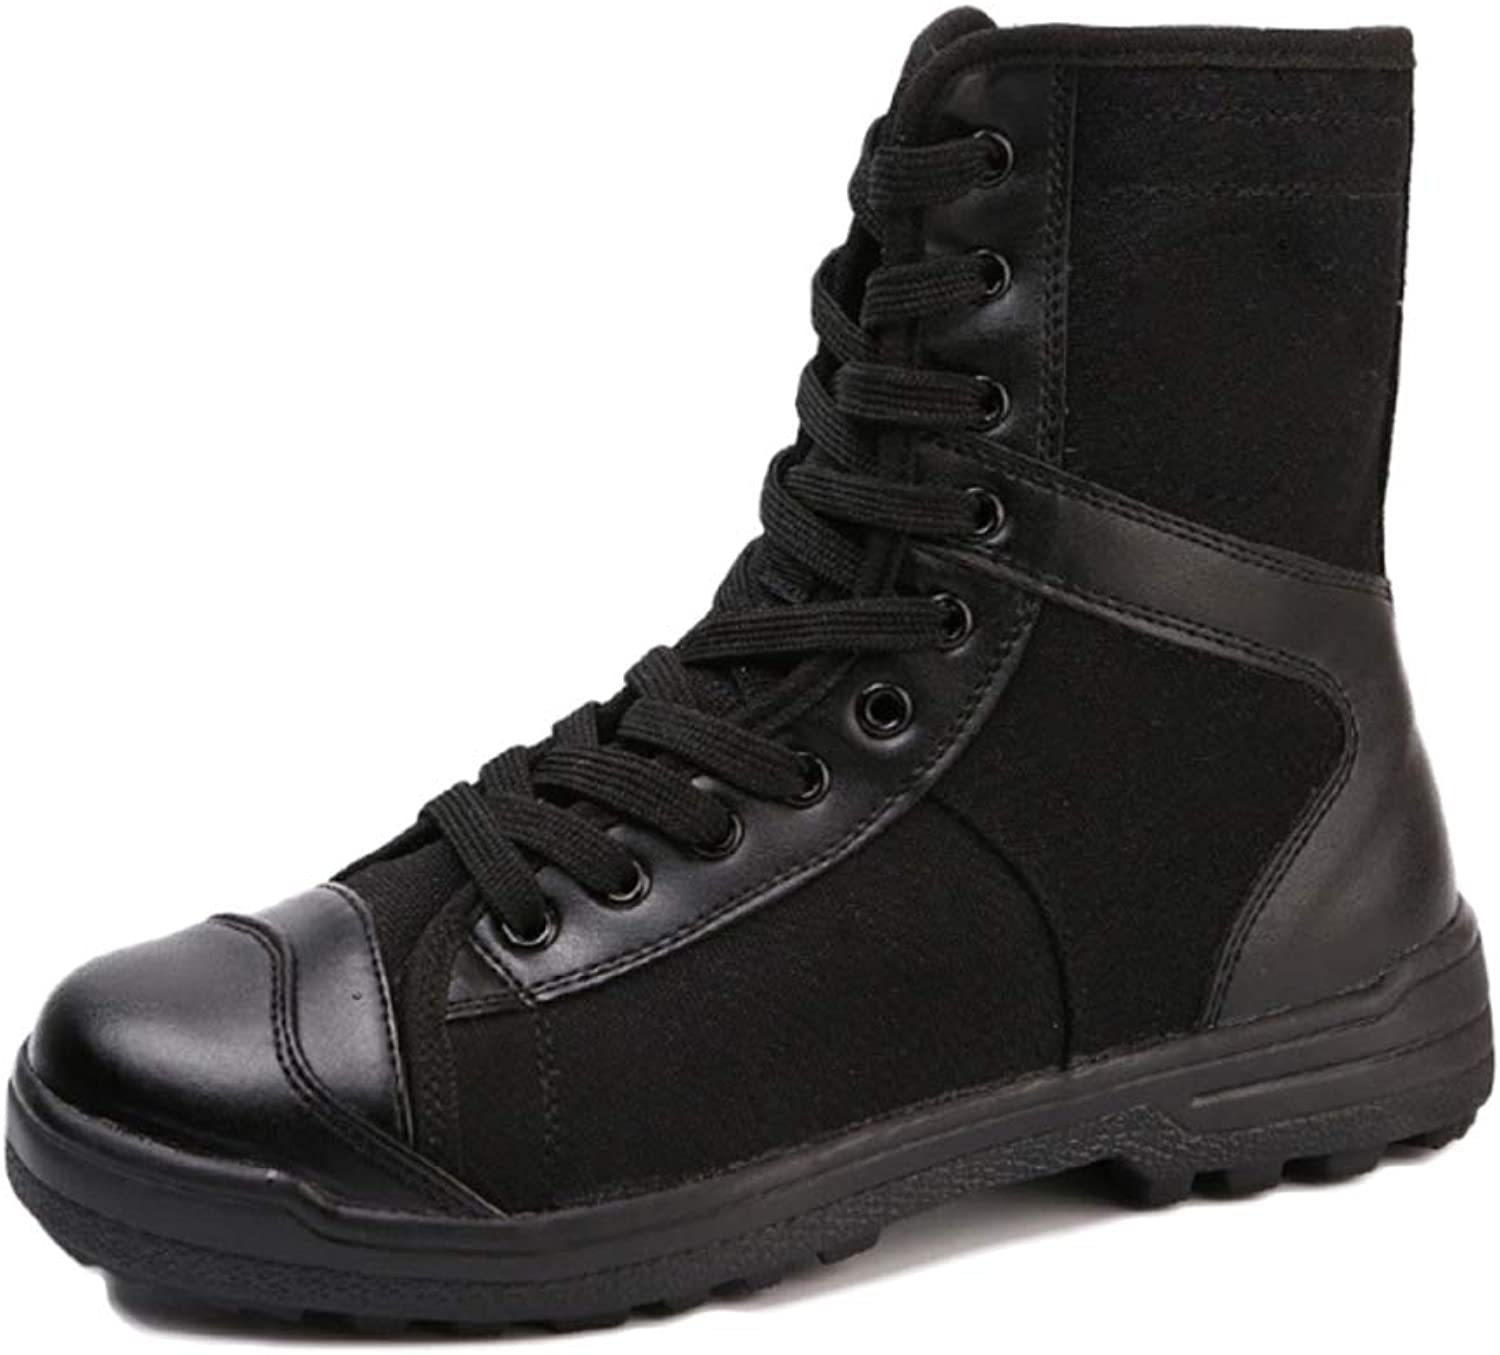 Men Boots Tactical Training Desert High-top Boots Breathable Lightweight